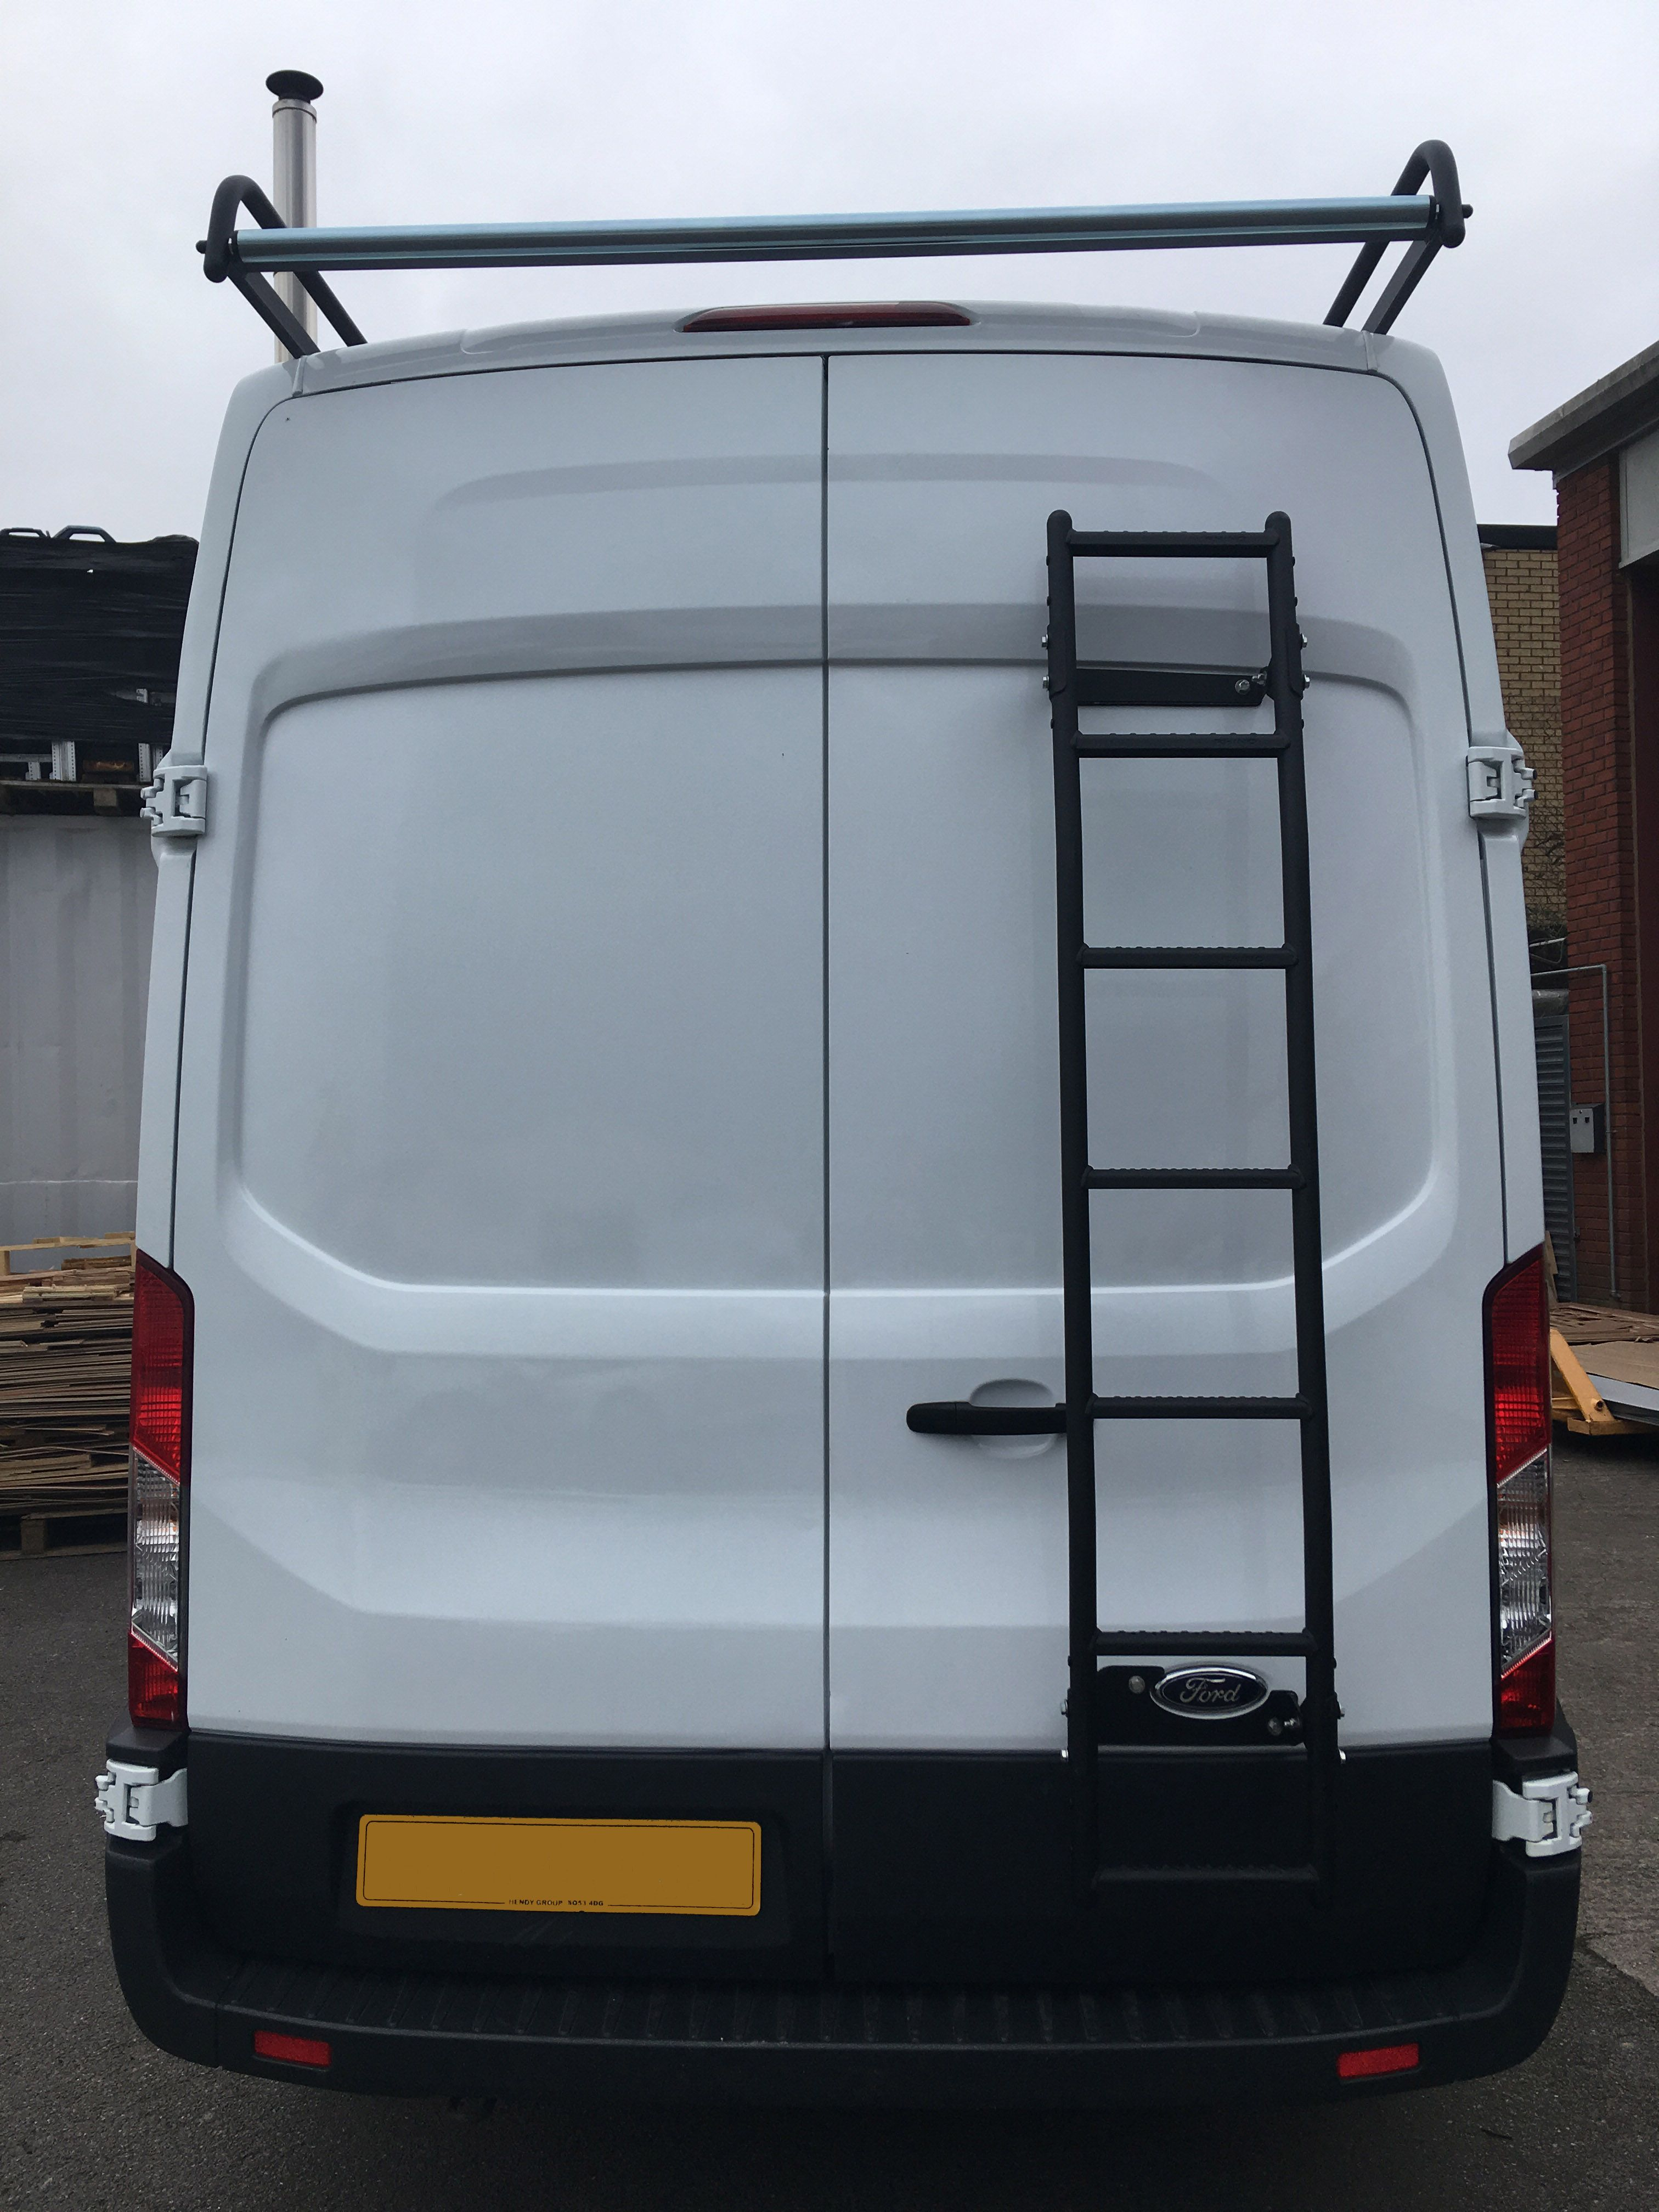 0de0cdc9a6 Rear door ladder and modular roof rack from Rhino Roof Accessories fitted  to this Ford Transit